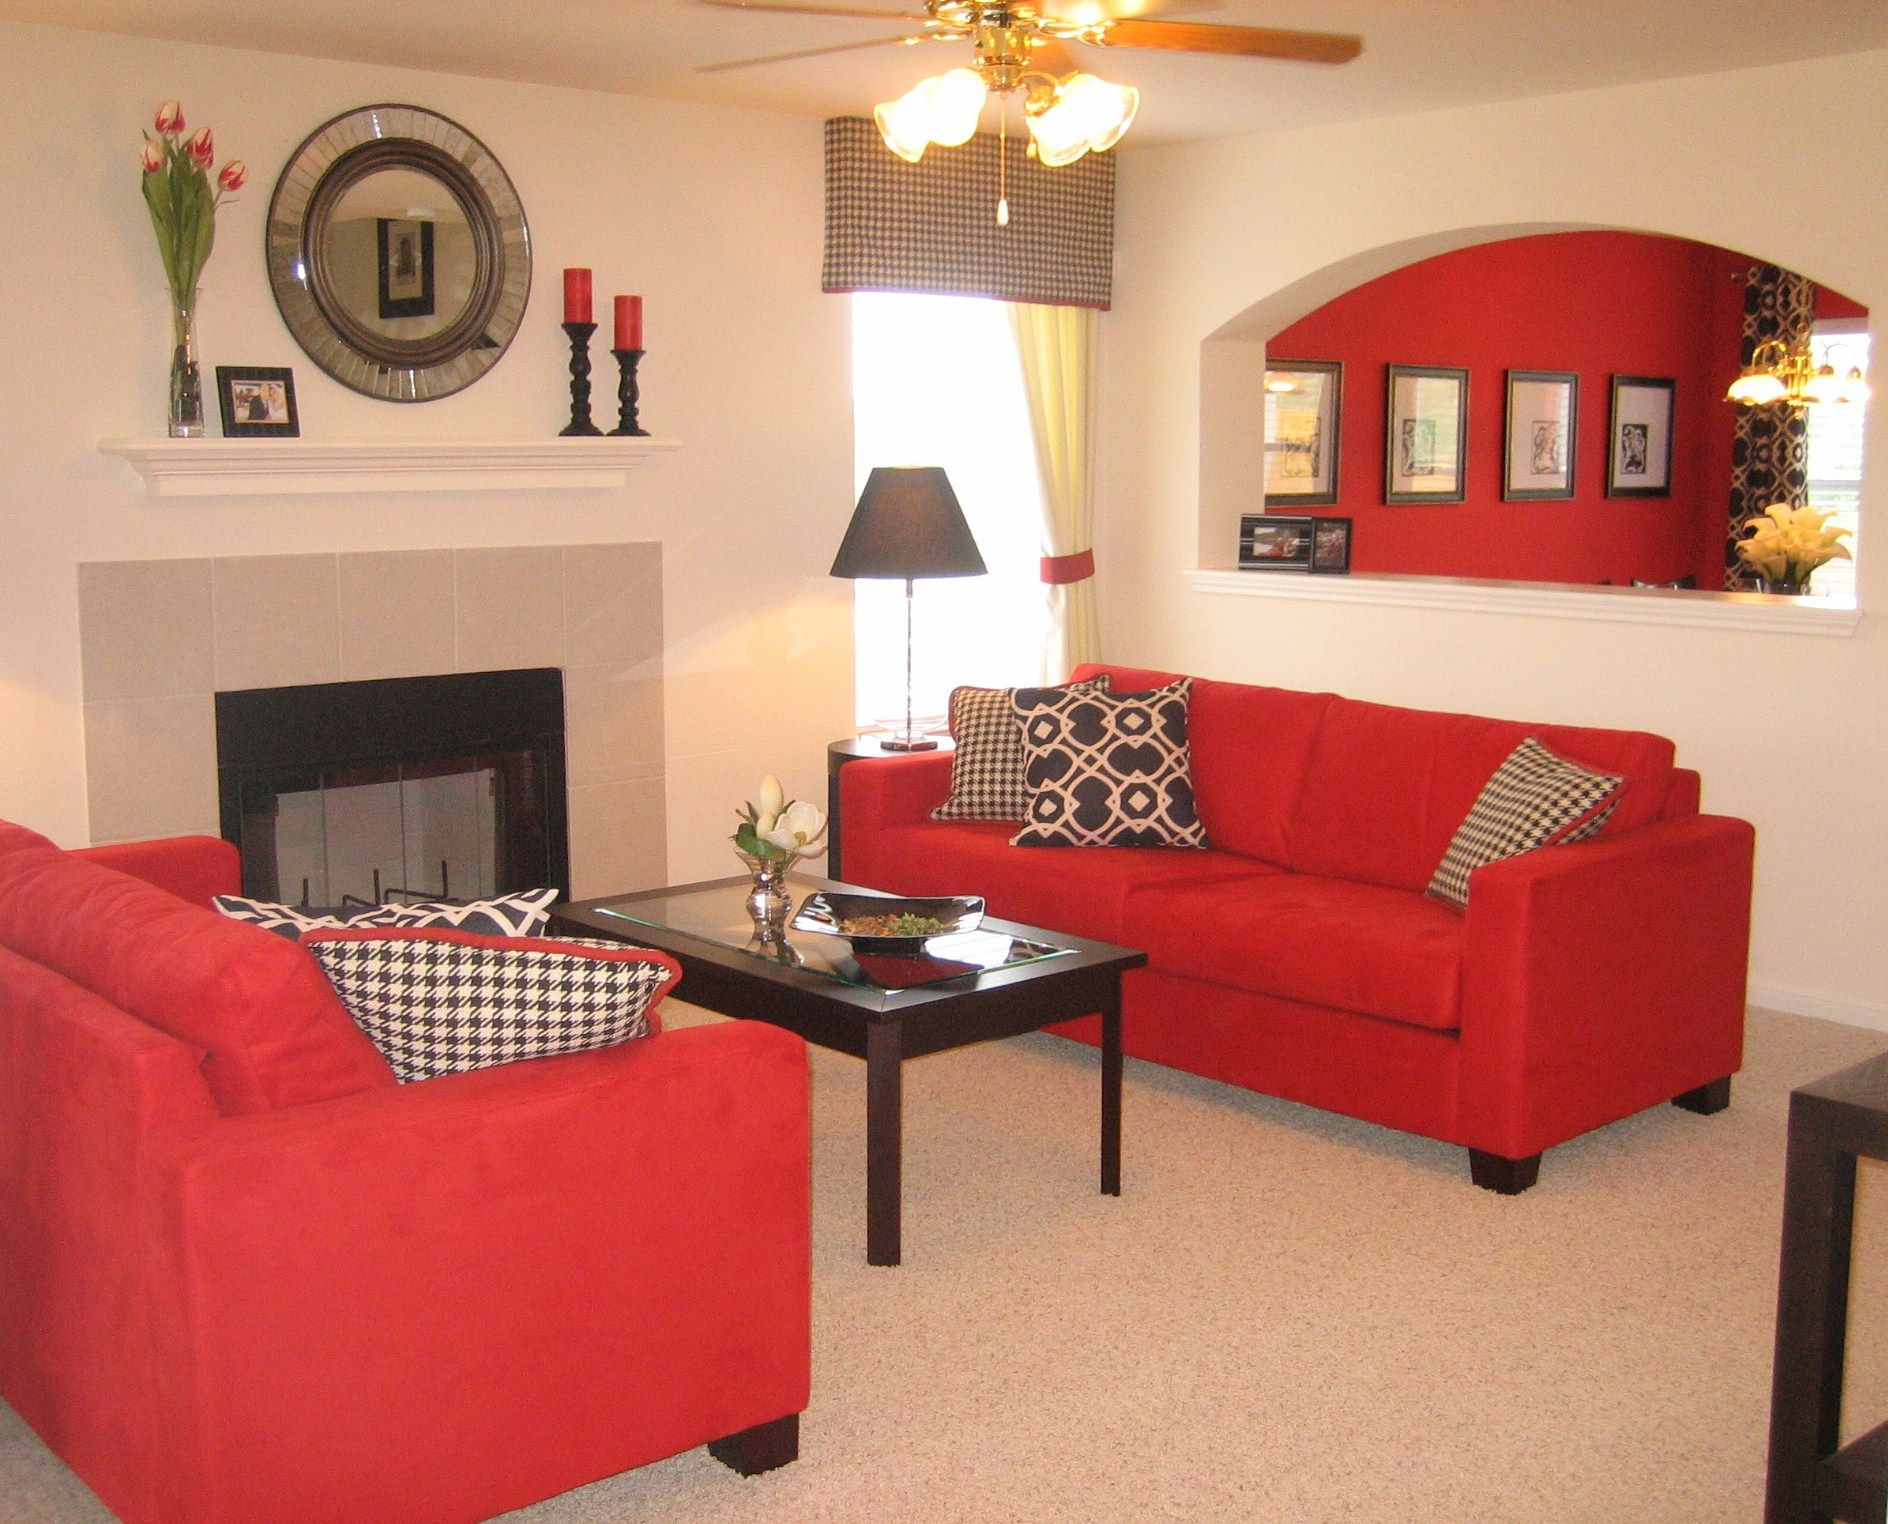 Living Room Ideas Living Room Astounding Red Vinyl Modern Living Couch And Arc Top Built In Sto Red Furniture Living Room Red Couch Living Room Living Room Red